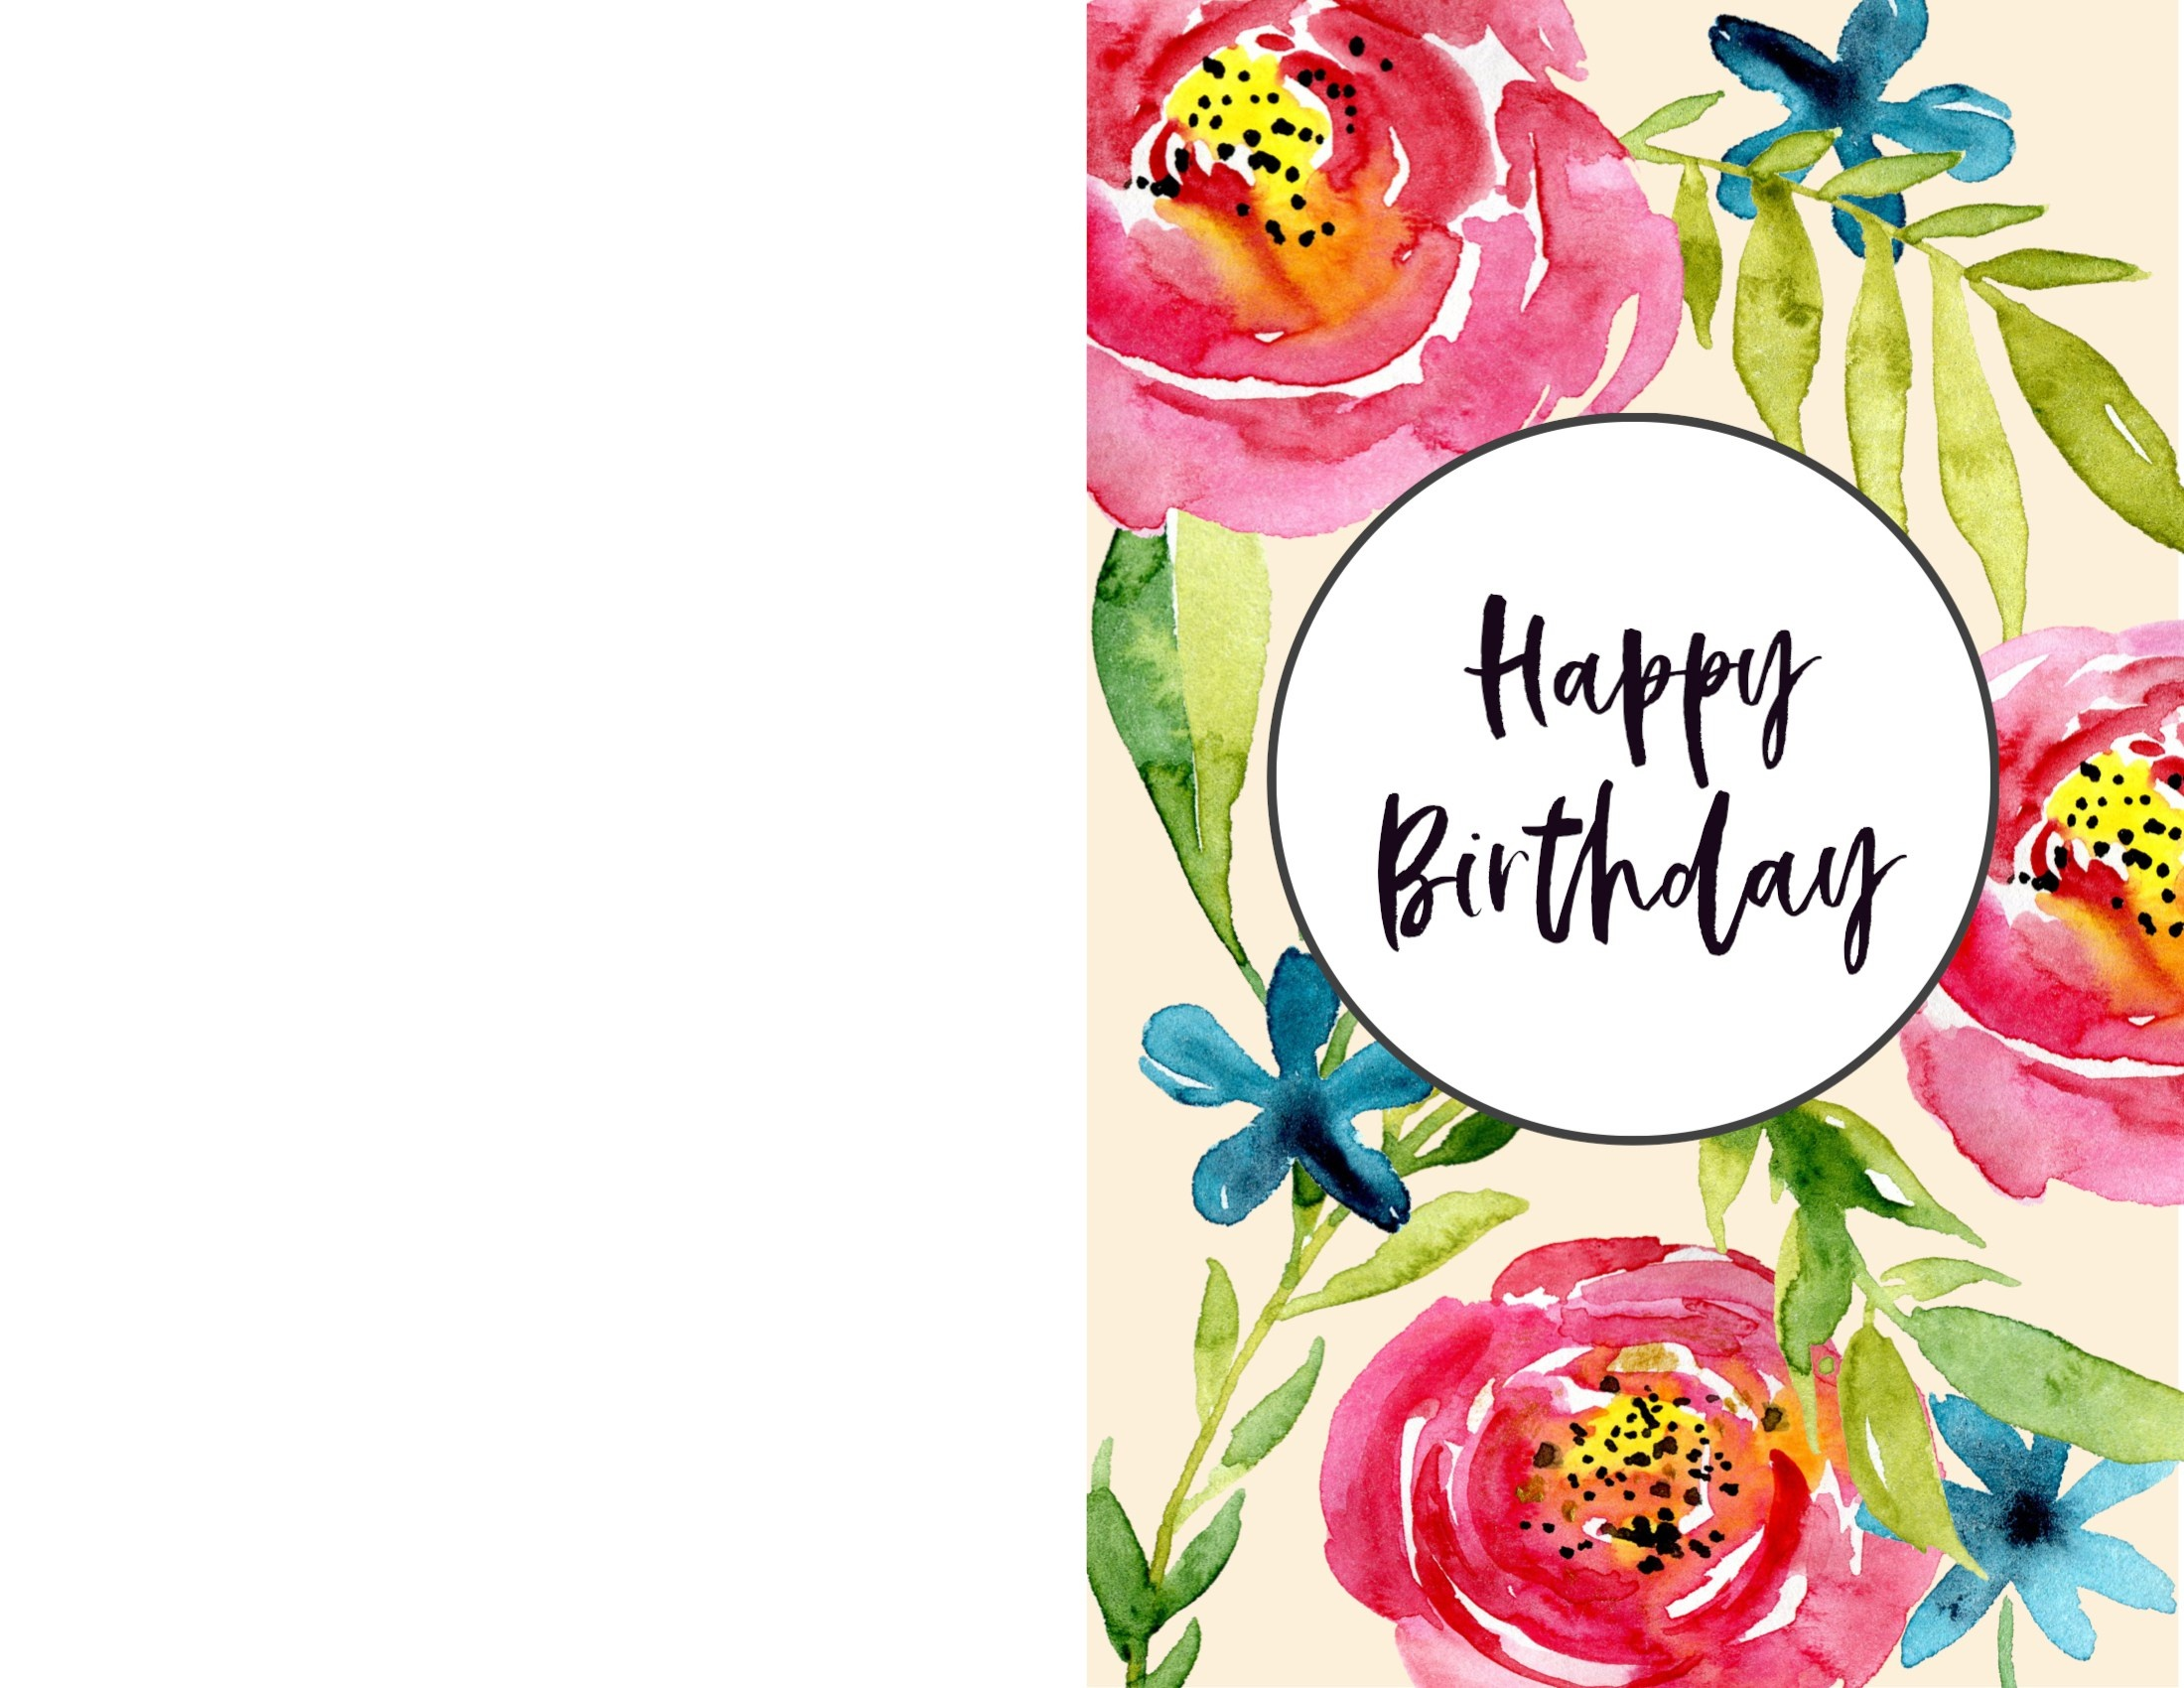 Free Printable Birthday Cards - Paper Trail Design - Free Printable Birthday Cards For Adults